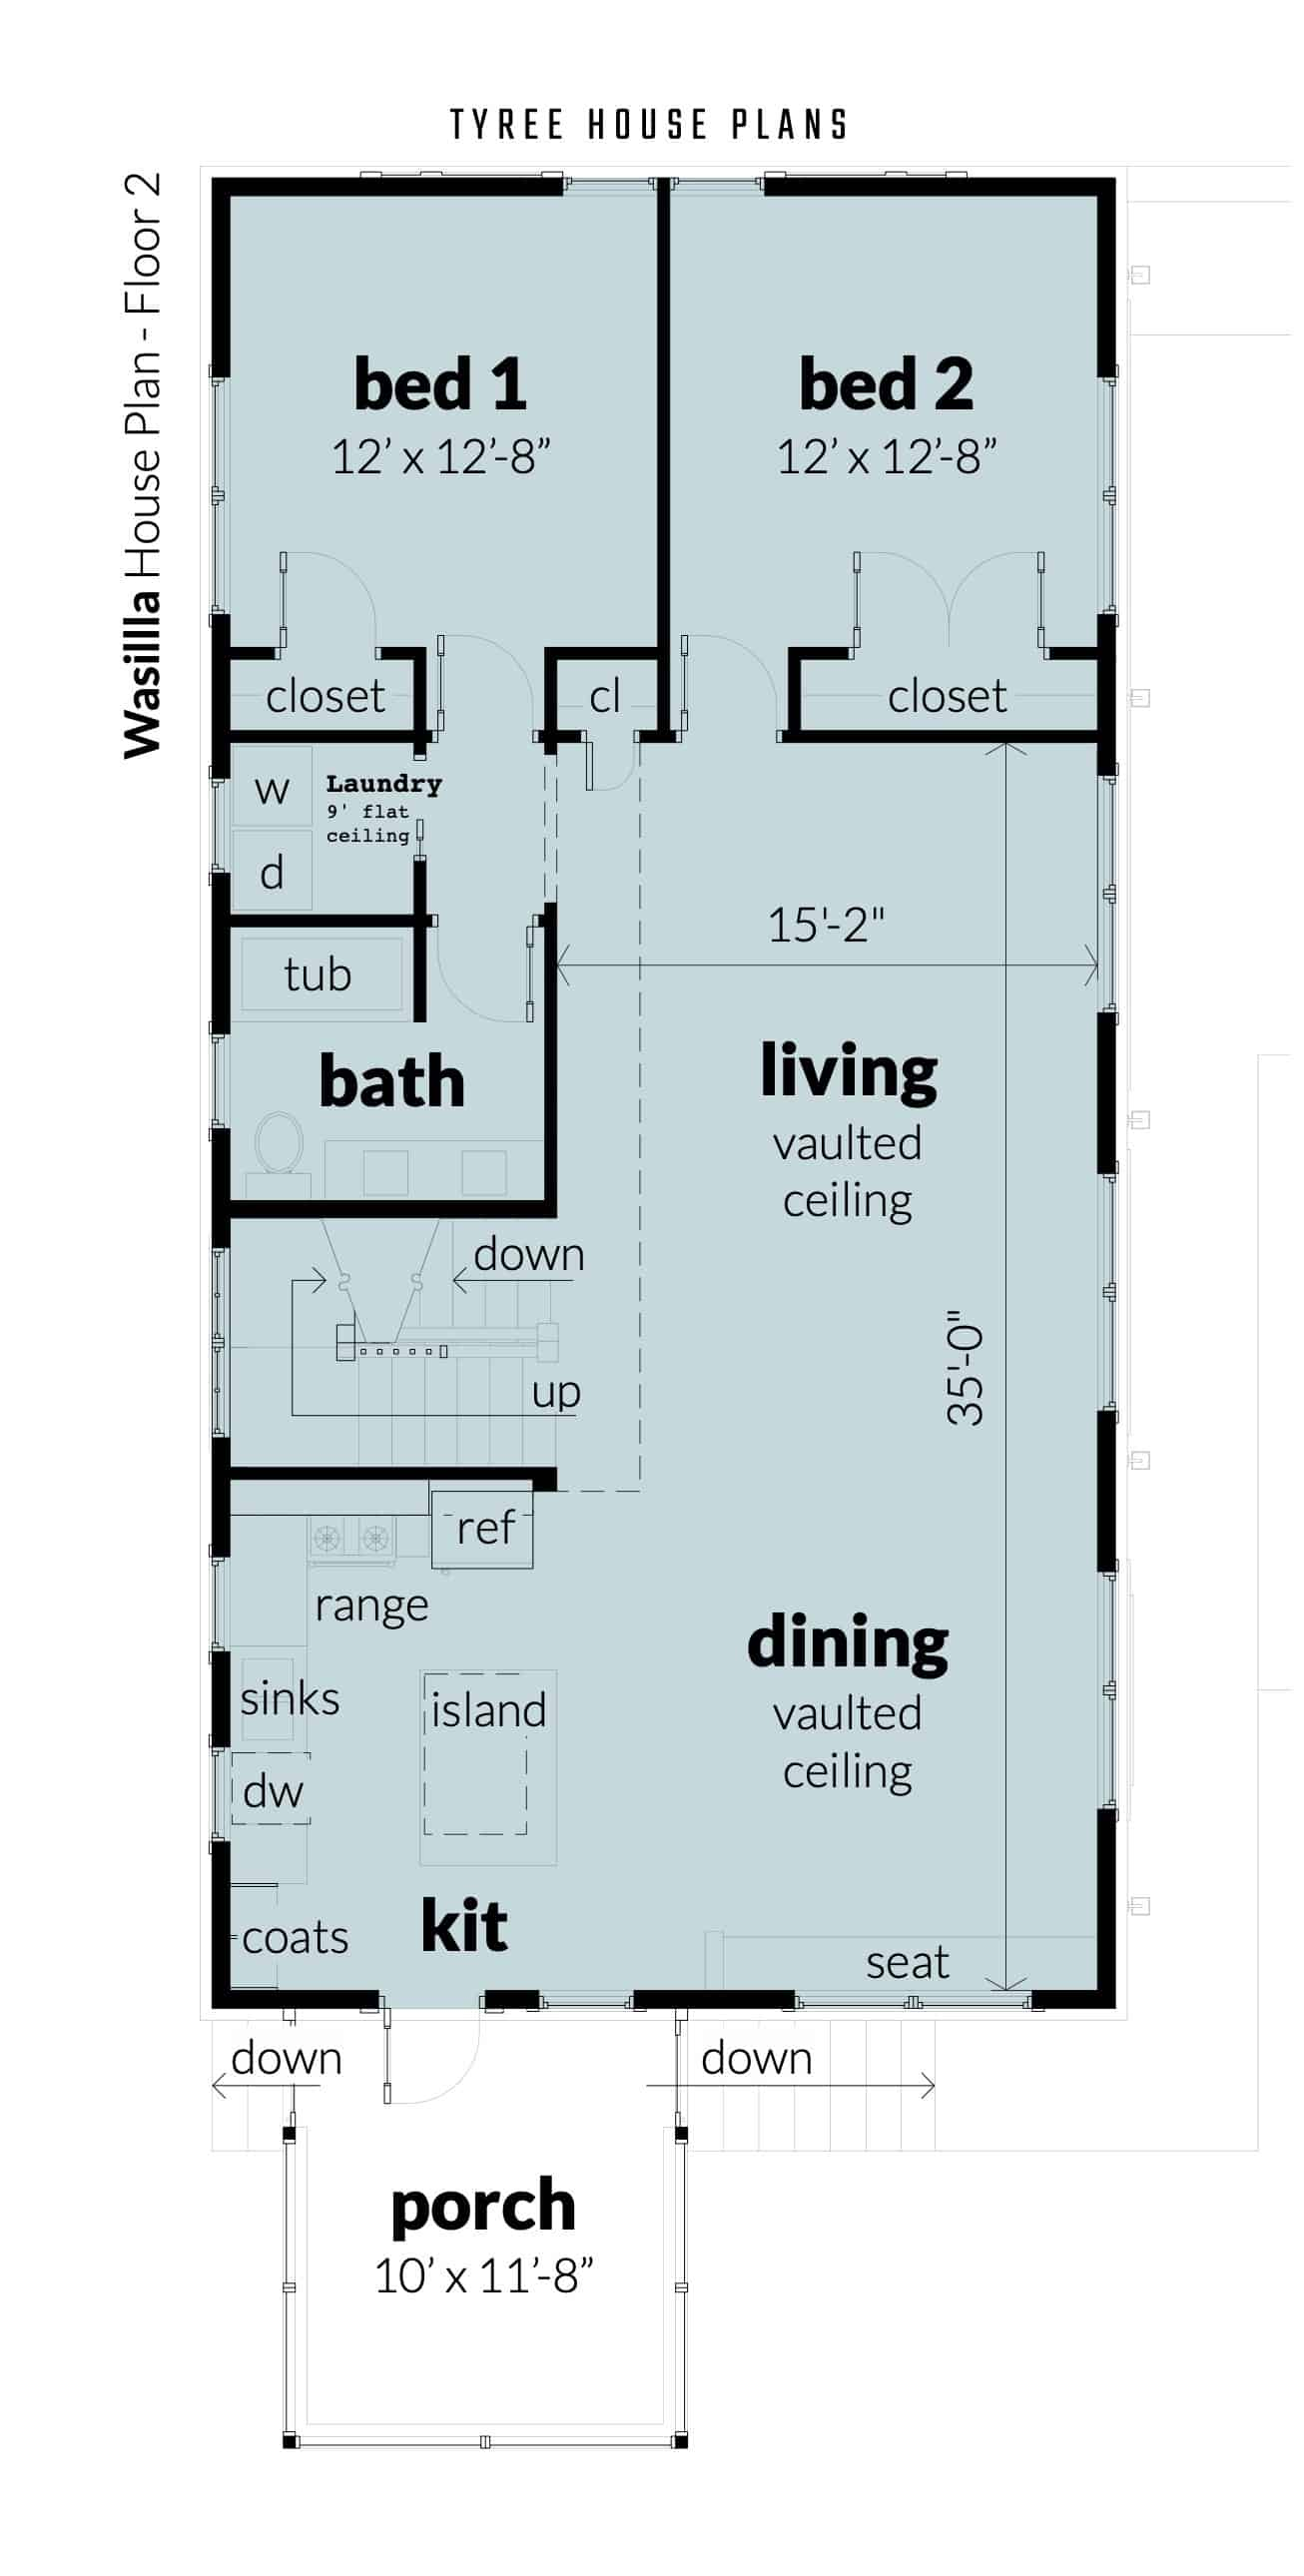 Floor 2 - Wasilla House Plan by Tyree House Plans